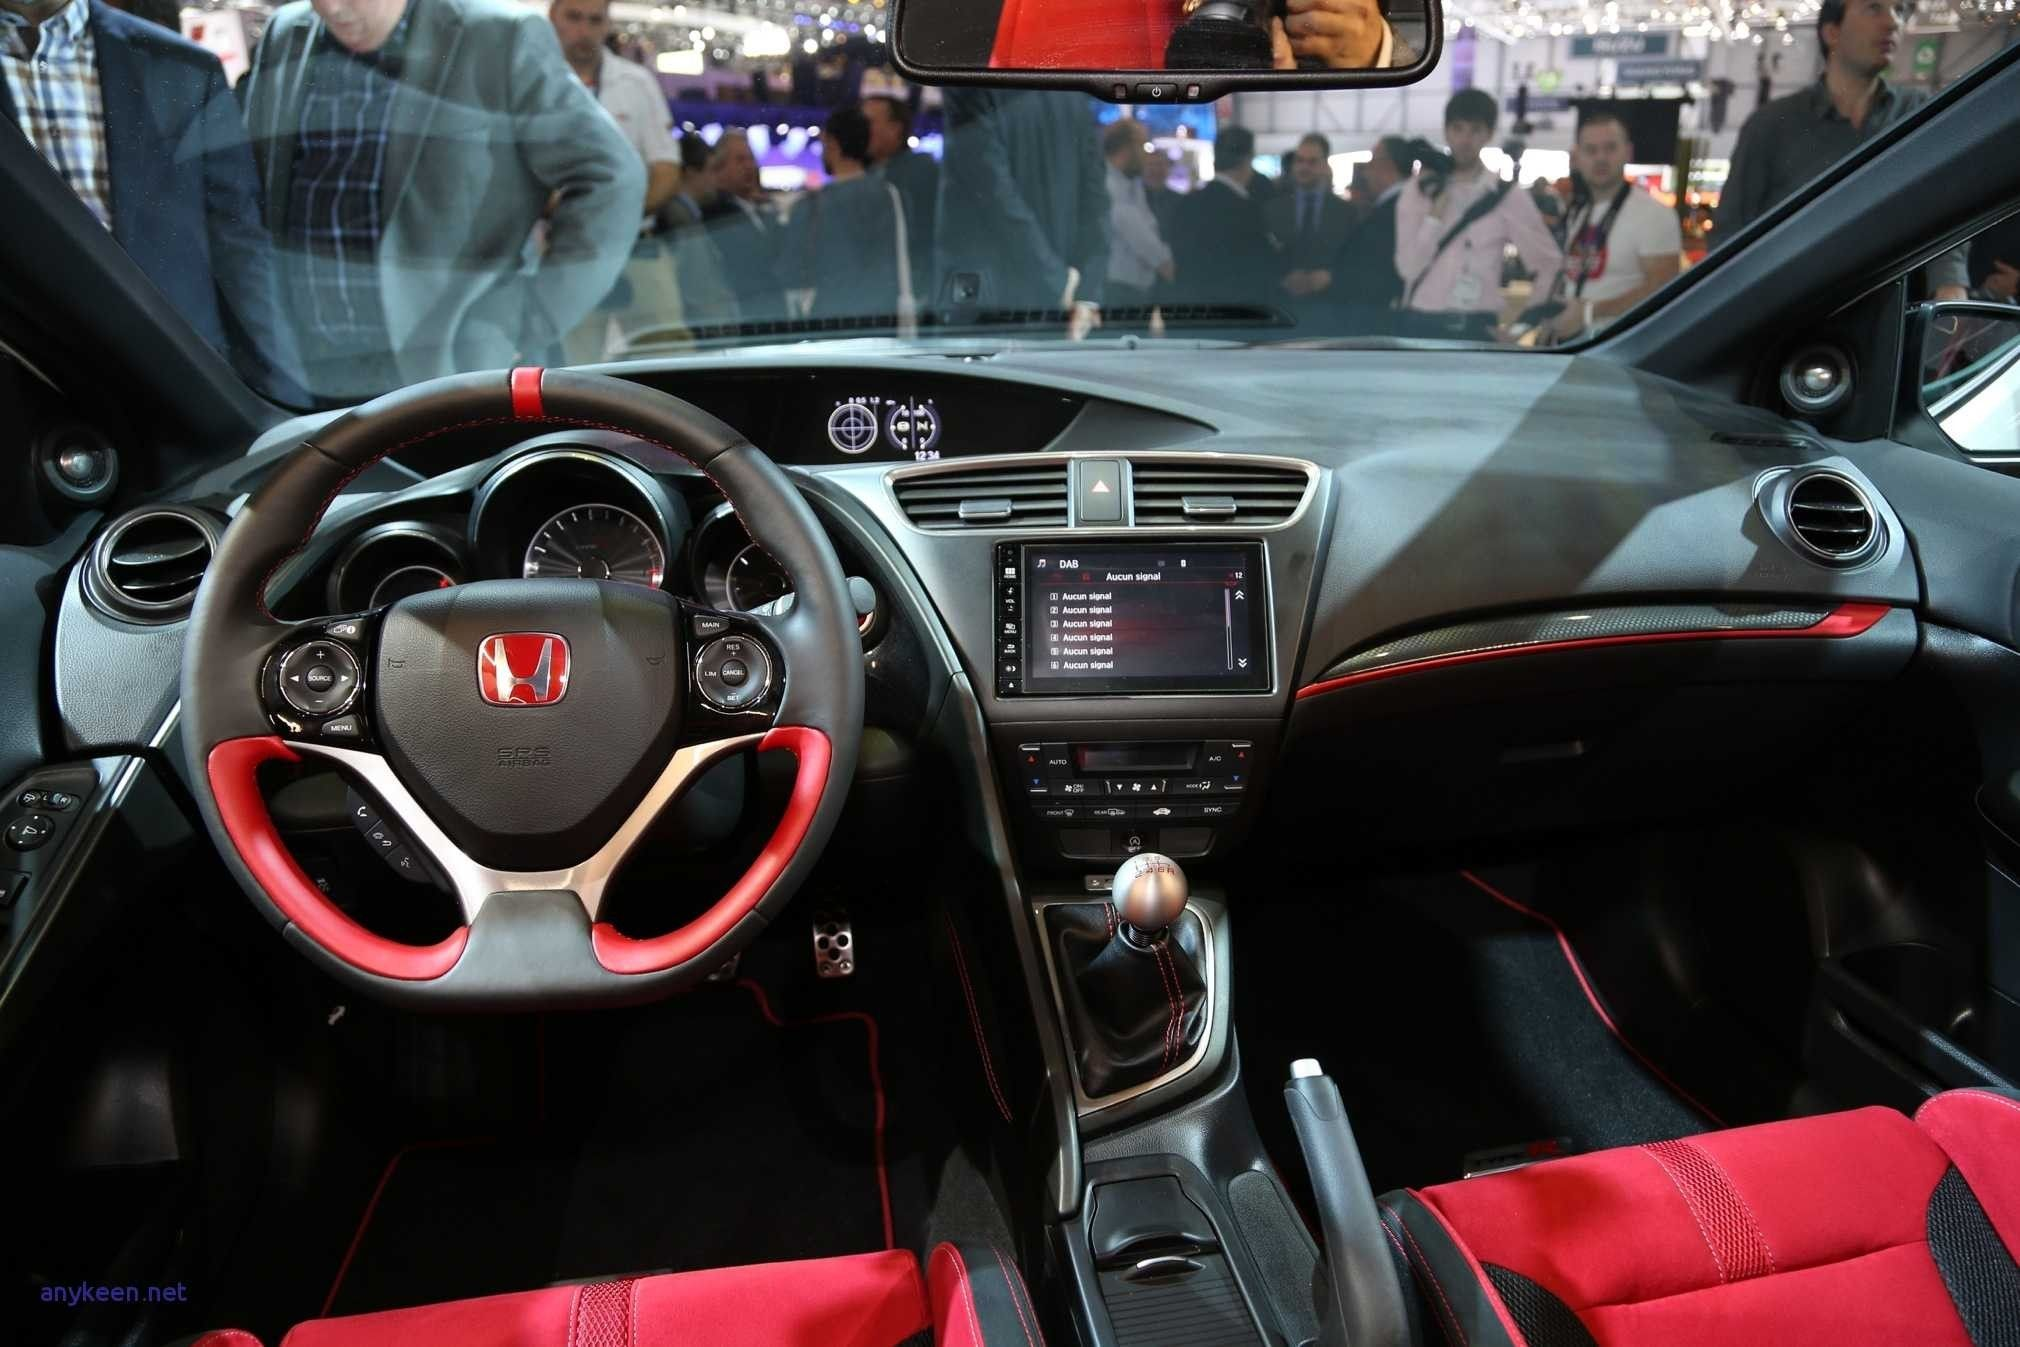 2019 Honda Civic Type R Redesign Price And Review Car Gallery Honda Civic Honda Civic Type R Honda Civic Si